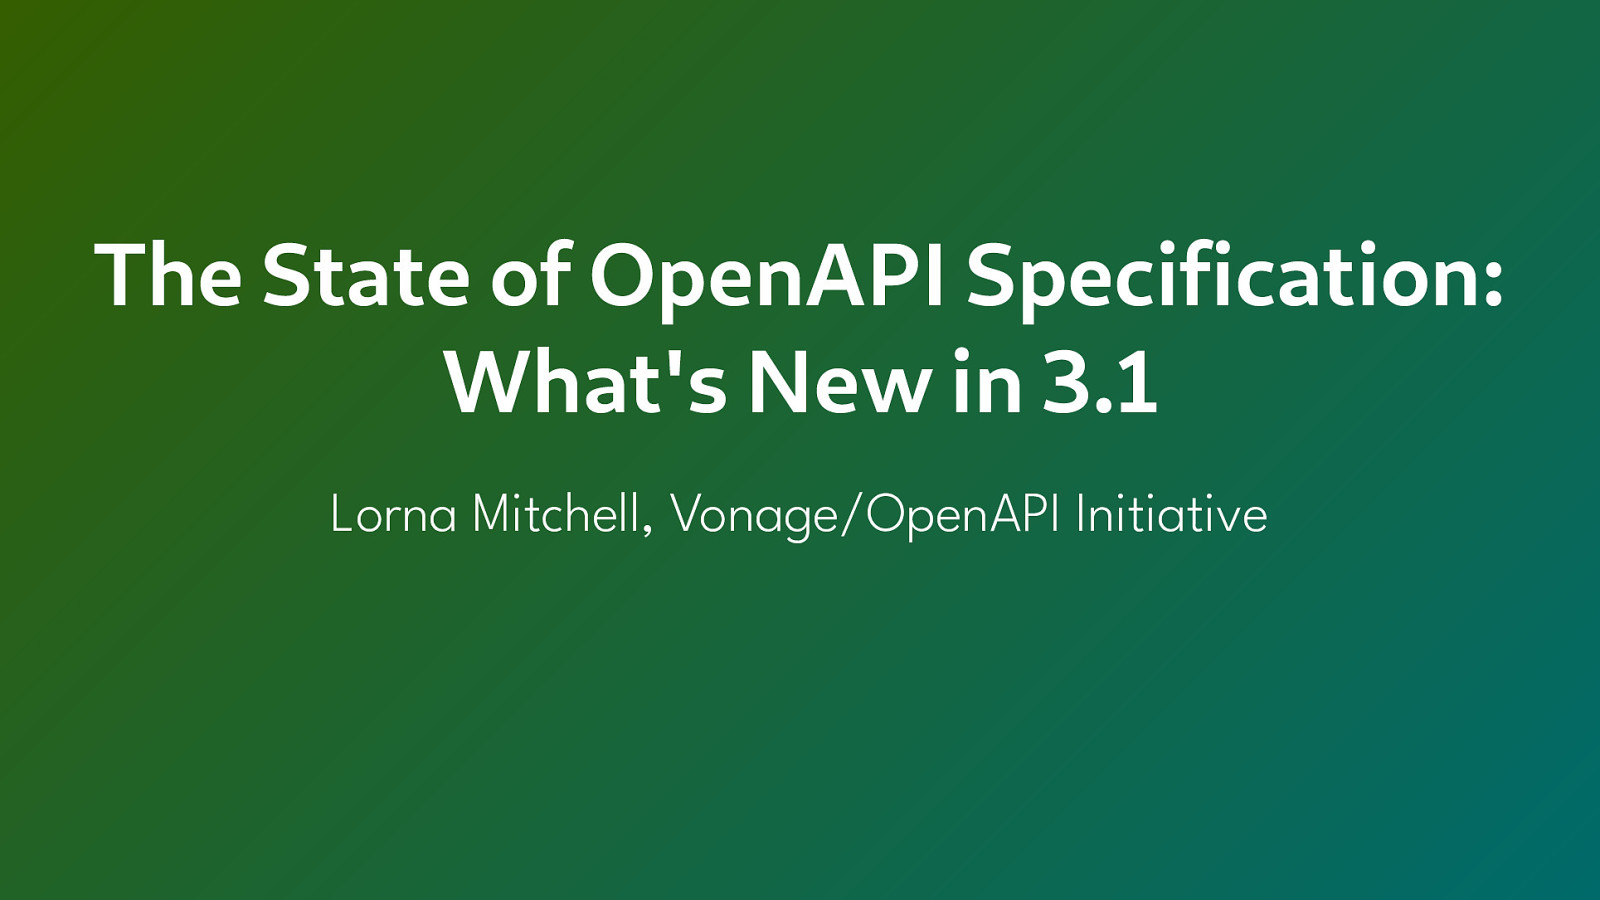 What's New in OpenAPI Specification 3.1